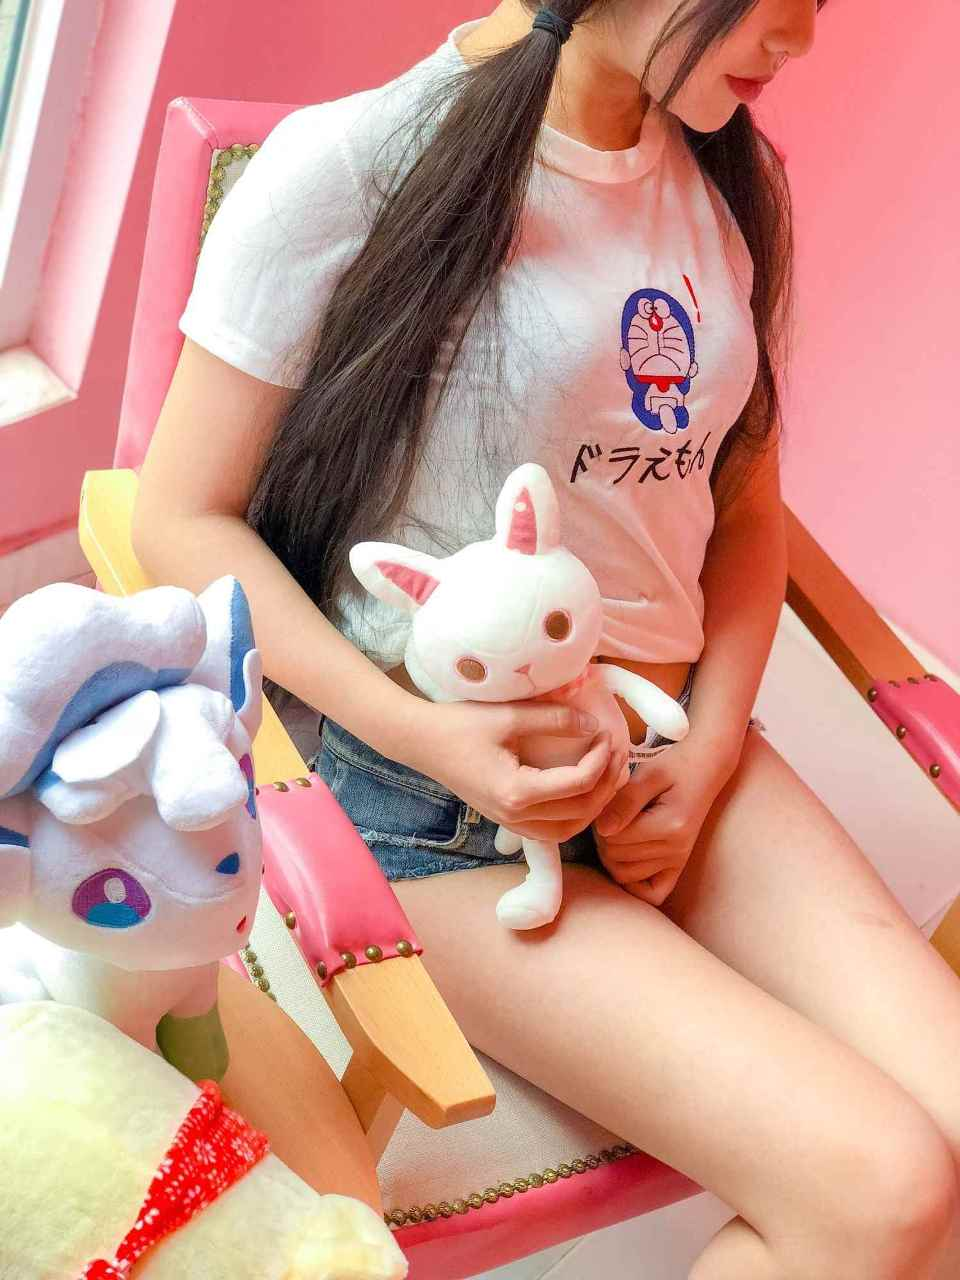 It's your cat fairy-pink girl in front of the window 1-Sexy girl-(42P)